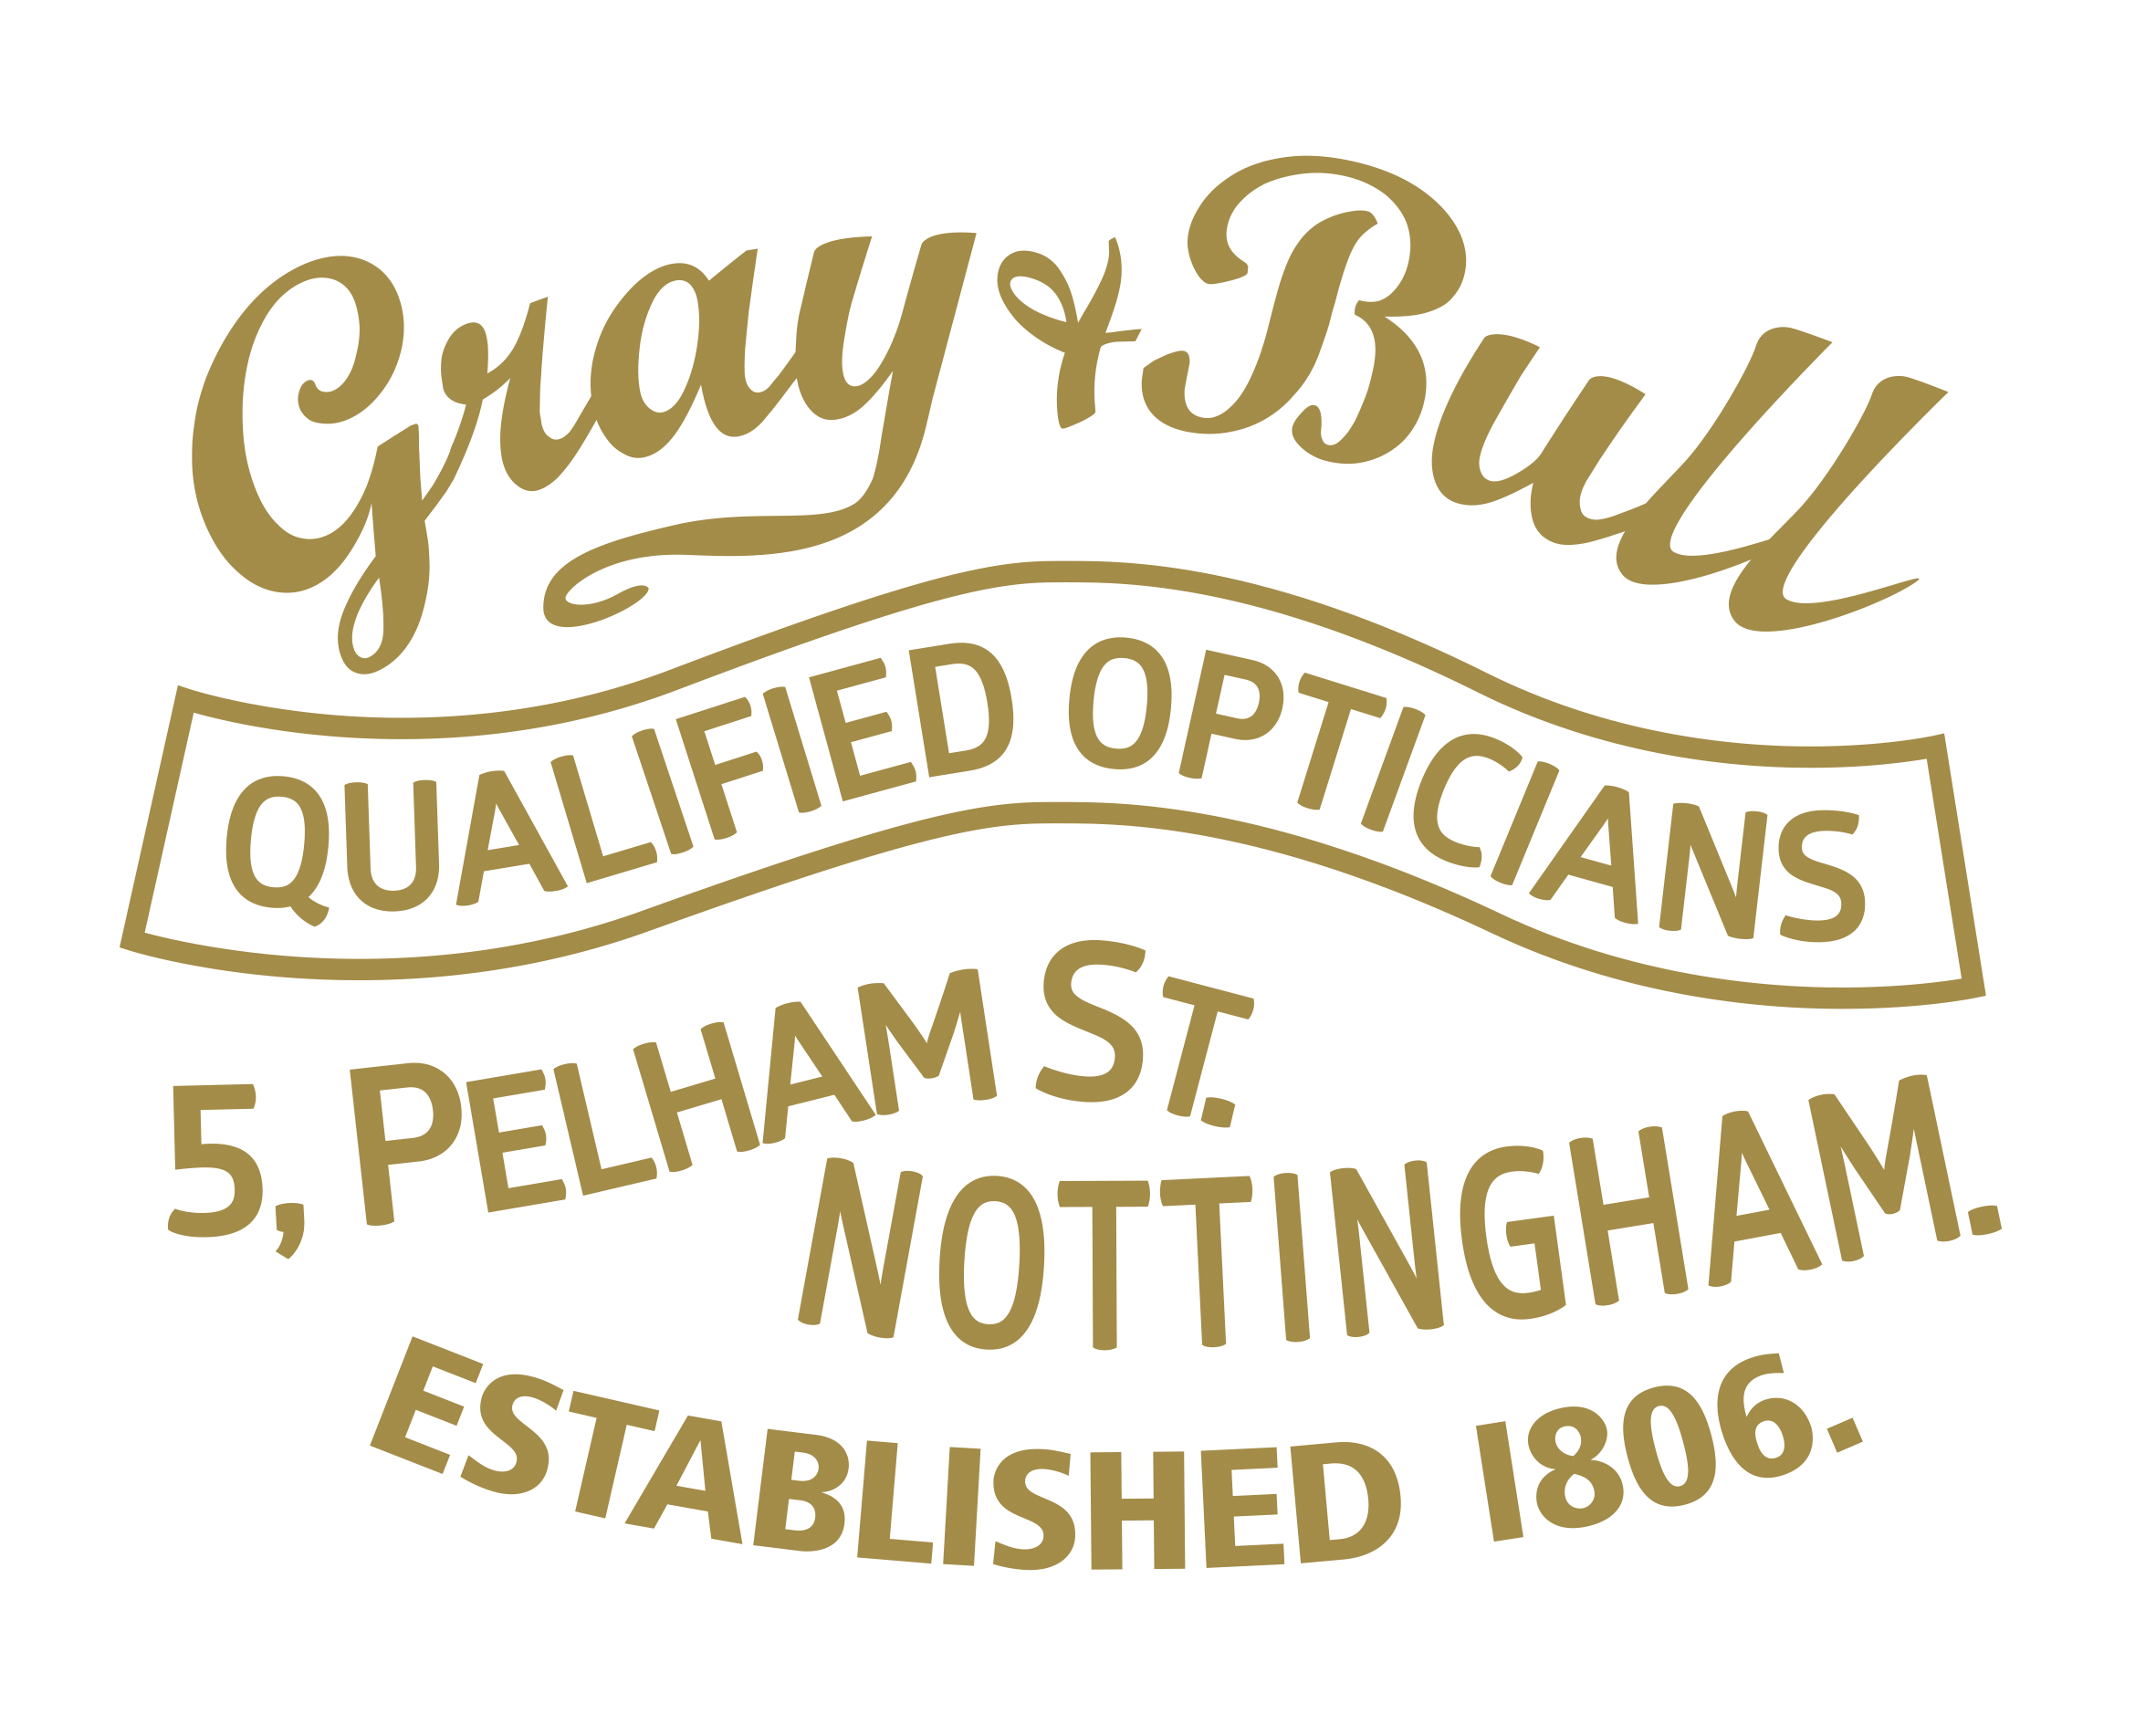 49e5f31a30e Gray   Bull offer the best choice of hard to find frames and also offer the  widest choice of lens options that I have ever seen. Their customer service  and ...